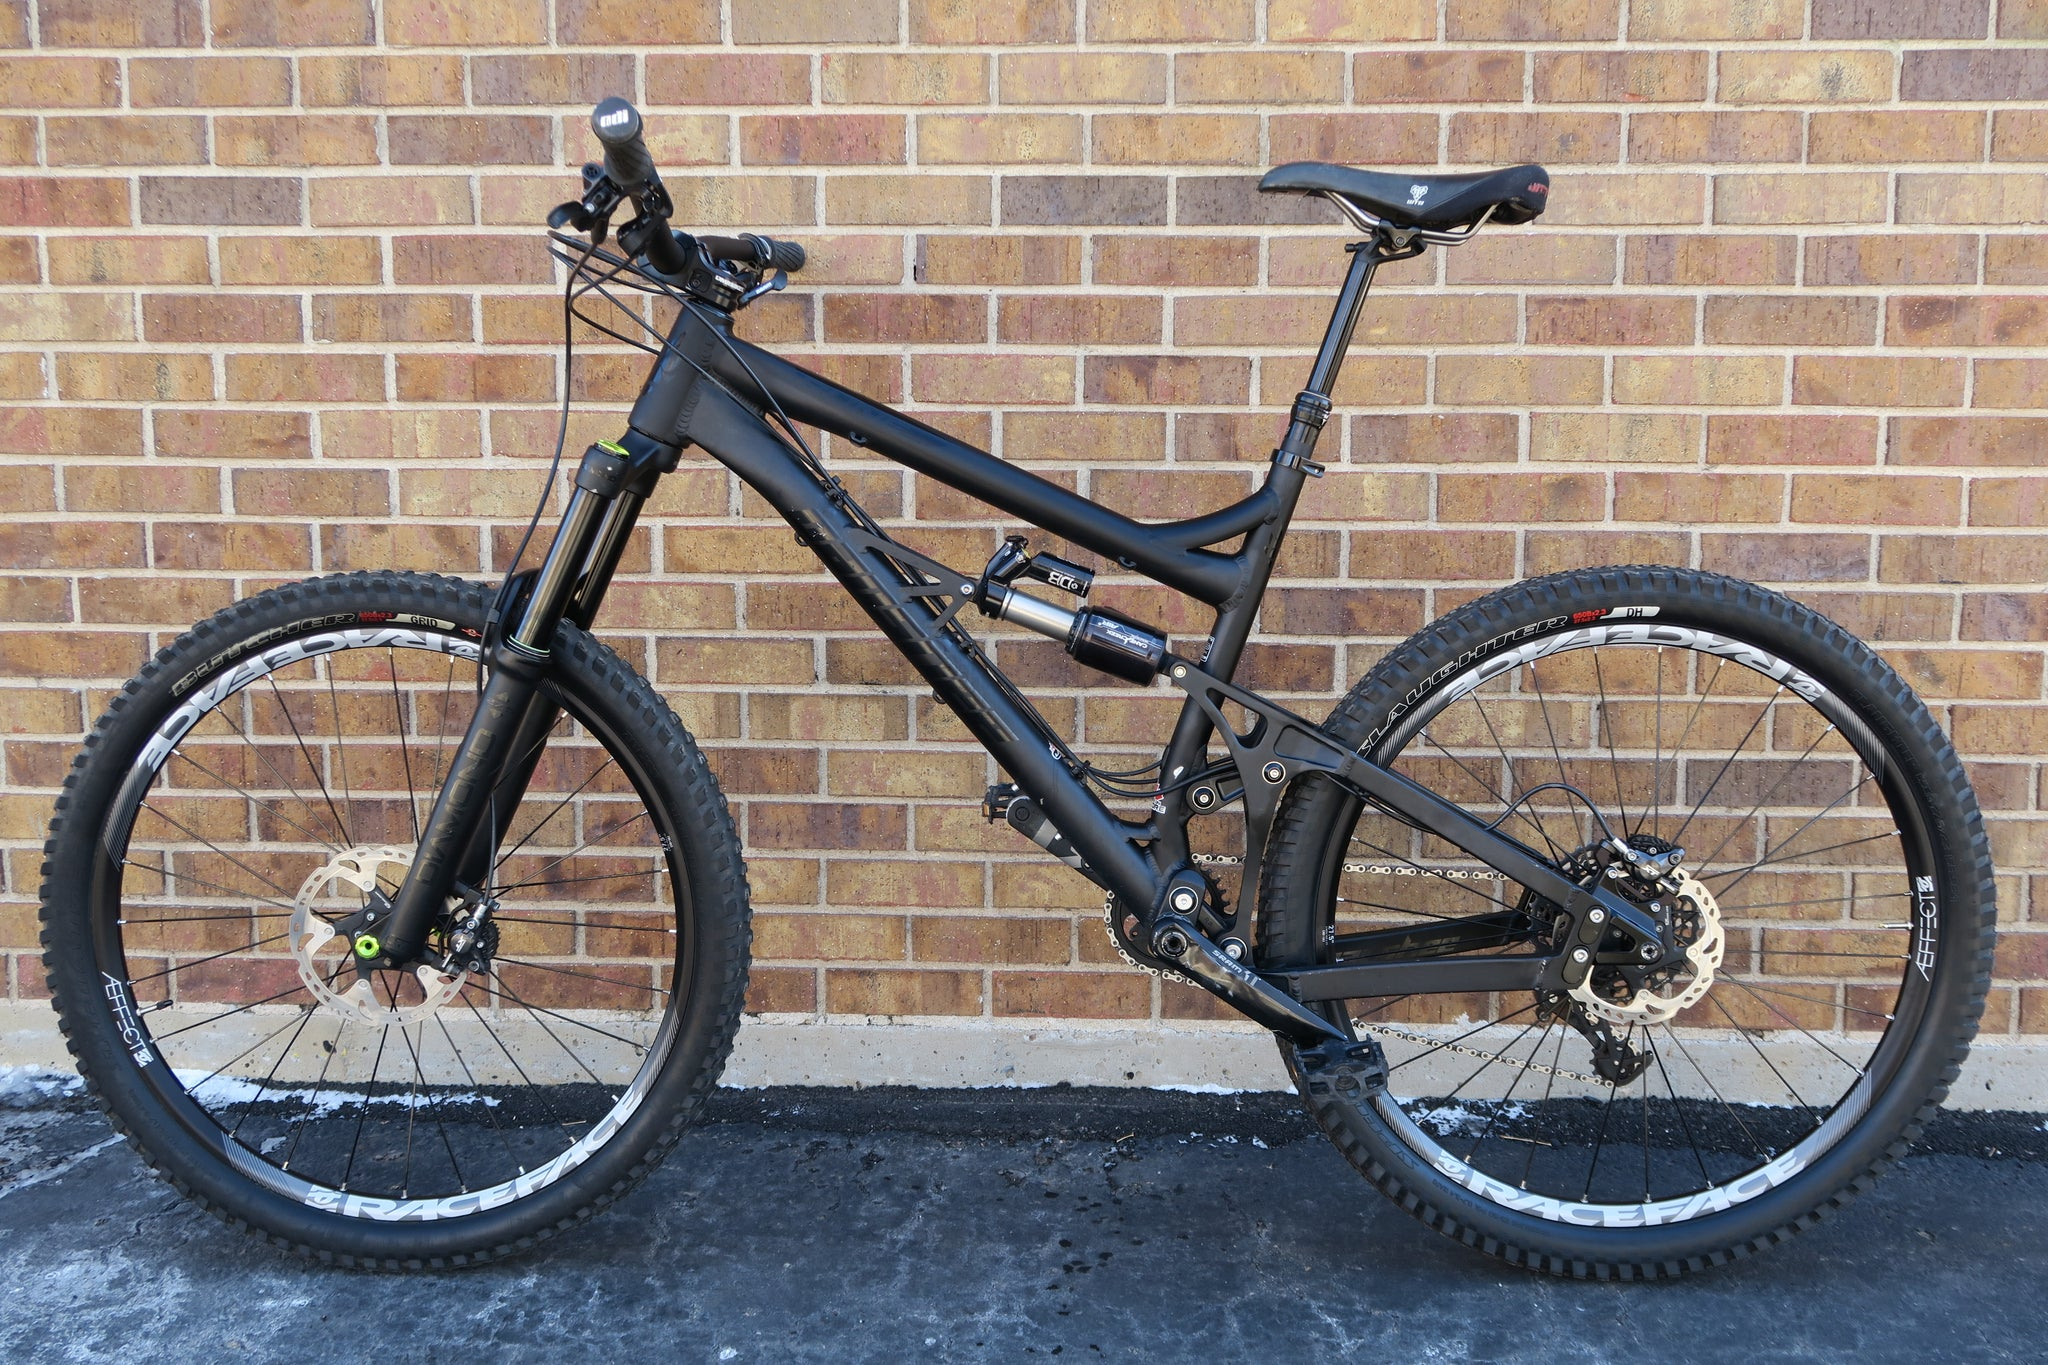 2016 BANSHEE RUNE ALL MOUNTAIN BIKE 27.5""